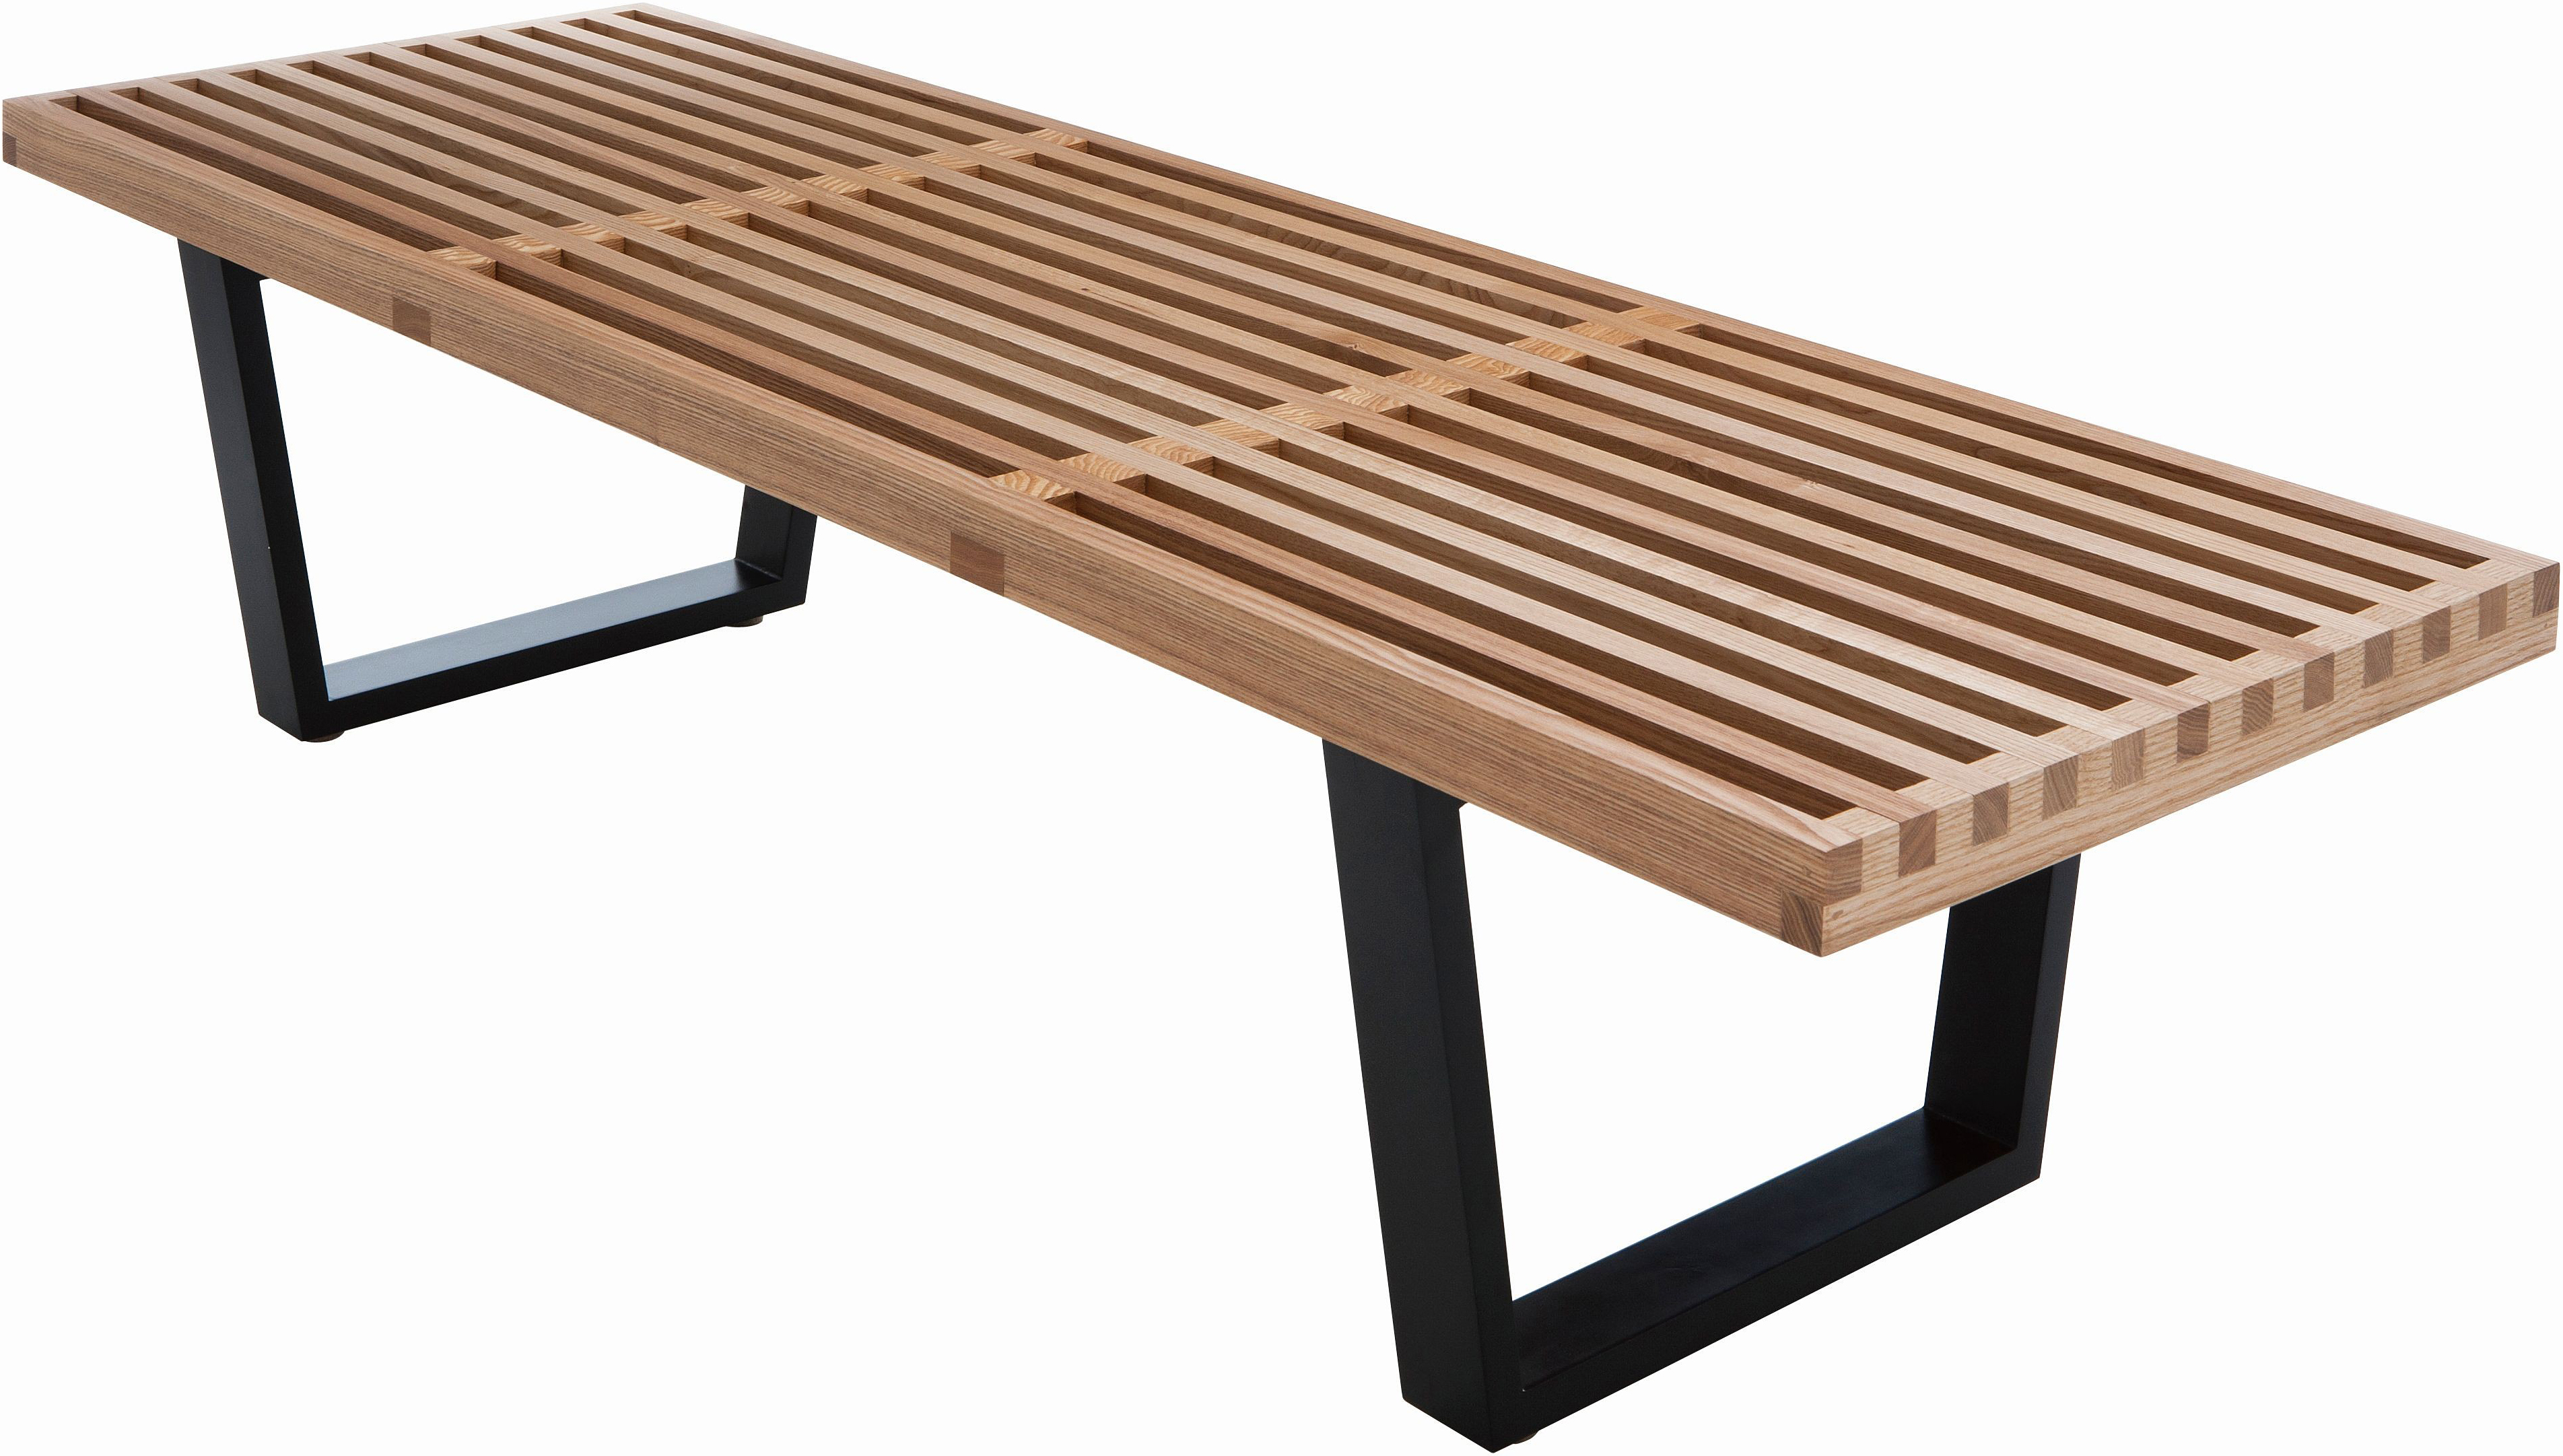 the tao bench by nuevo living